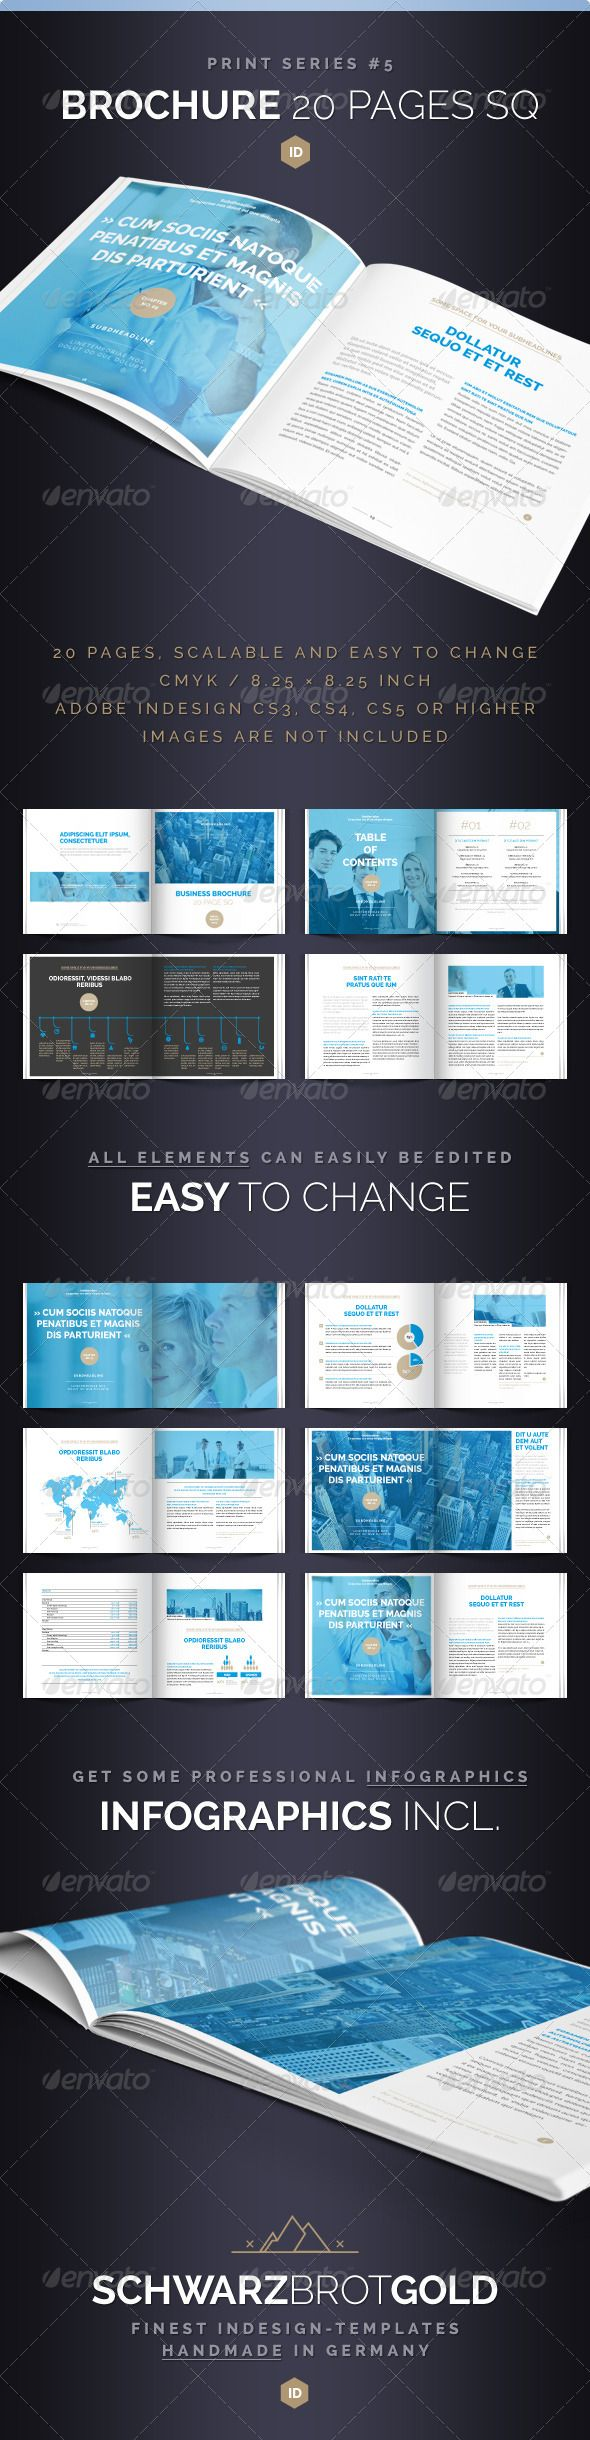 multi page brochure template free - 106 best images about print templates on pinterest fonts